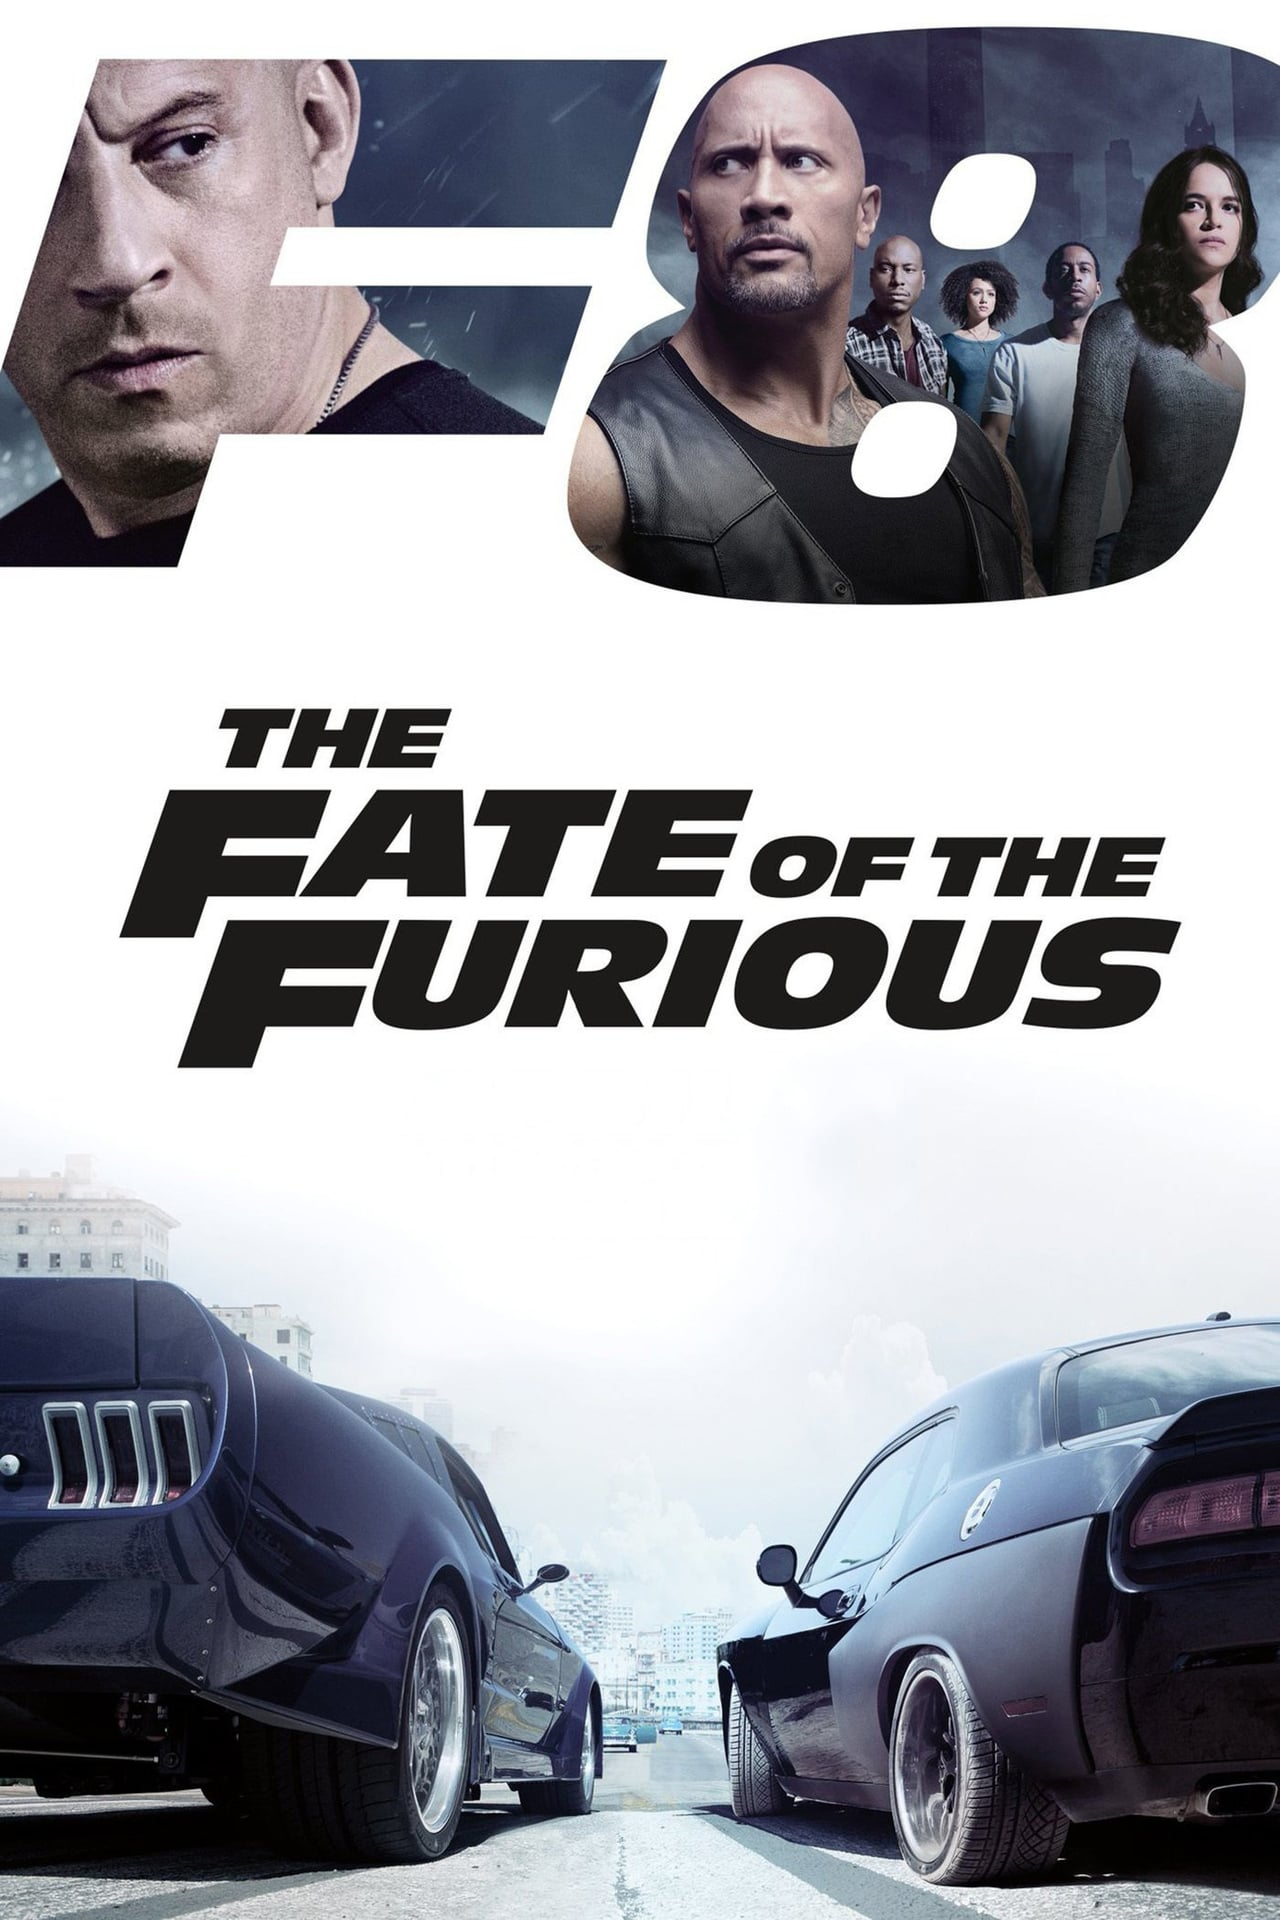 Download Fast & Furious 8: The Fate of the Furious (2017) [Hindi-English] 480p [400MB] | 720p [1.3GB] | 1080p [4.2GB]